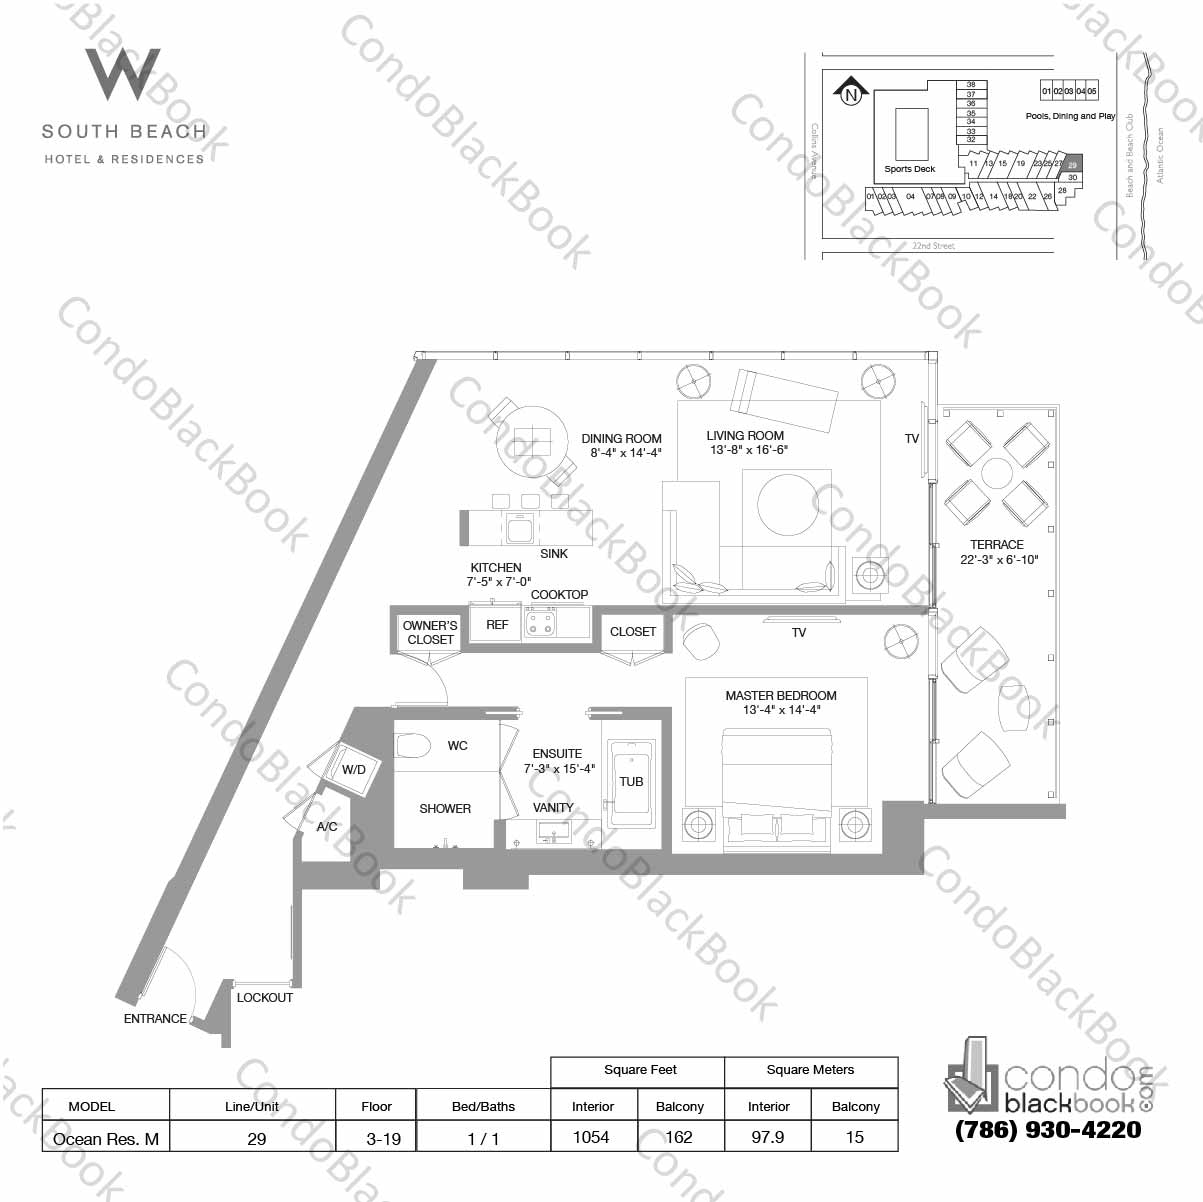 Floor plan for W South Beach South Beach Miami Beach, model Ocean Res. M, line 29, 1 / 1 bedrooms, 1054 sq ft